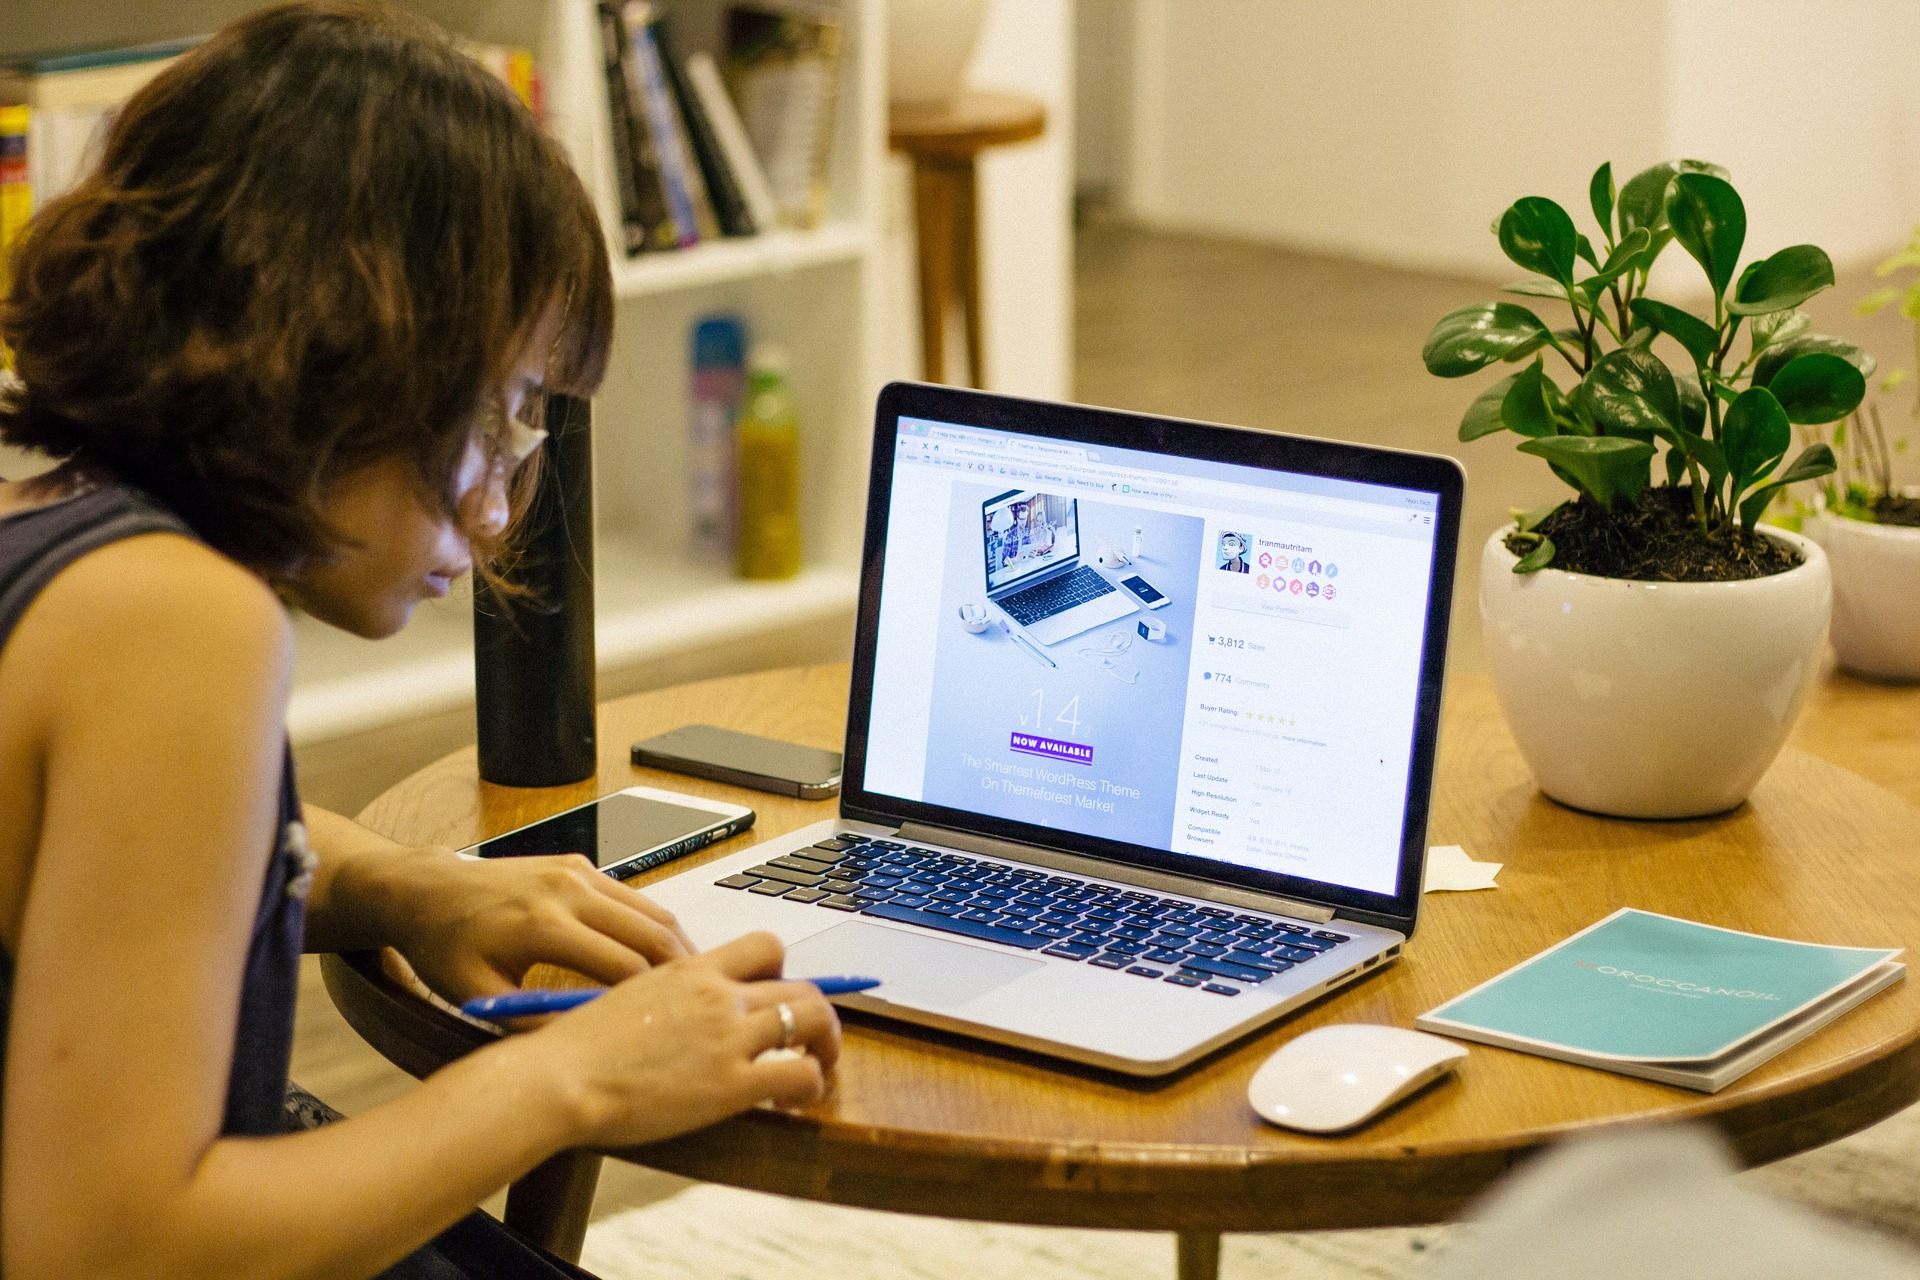 4 tips that make working from home more bearable